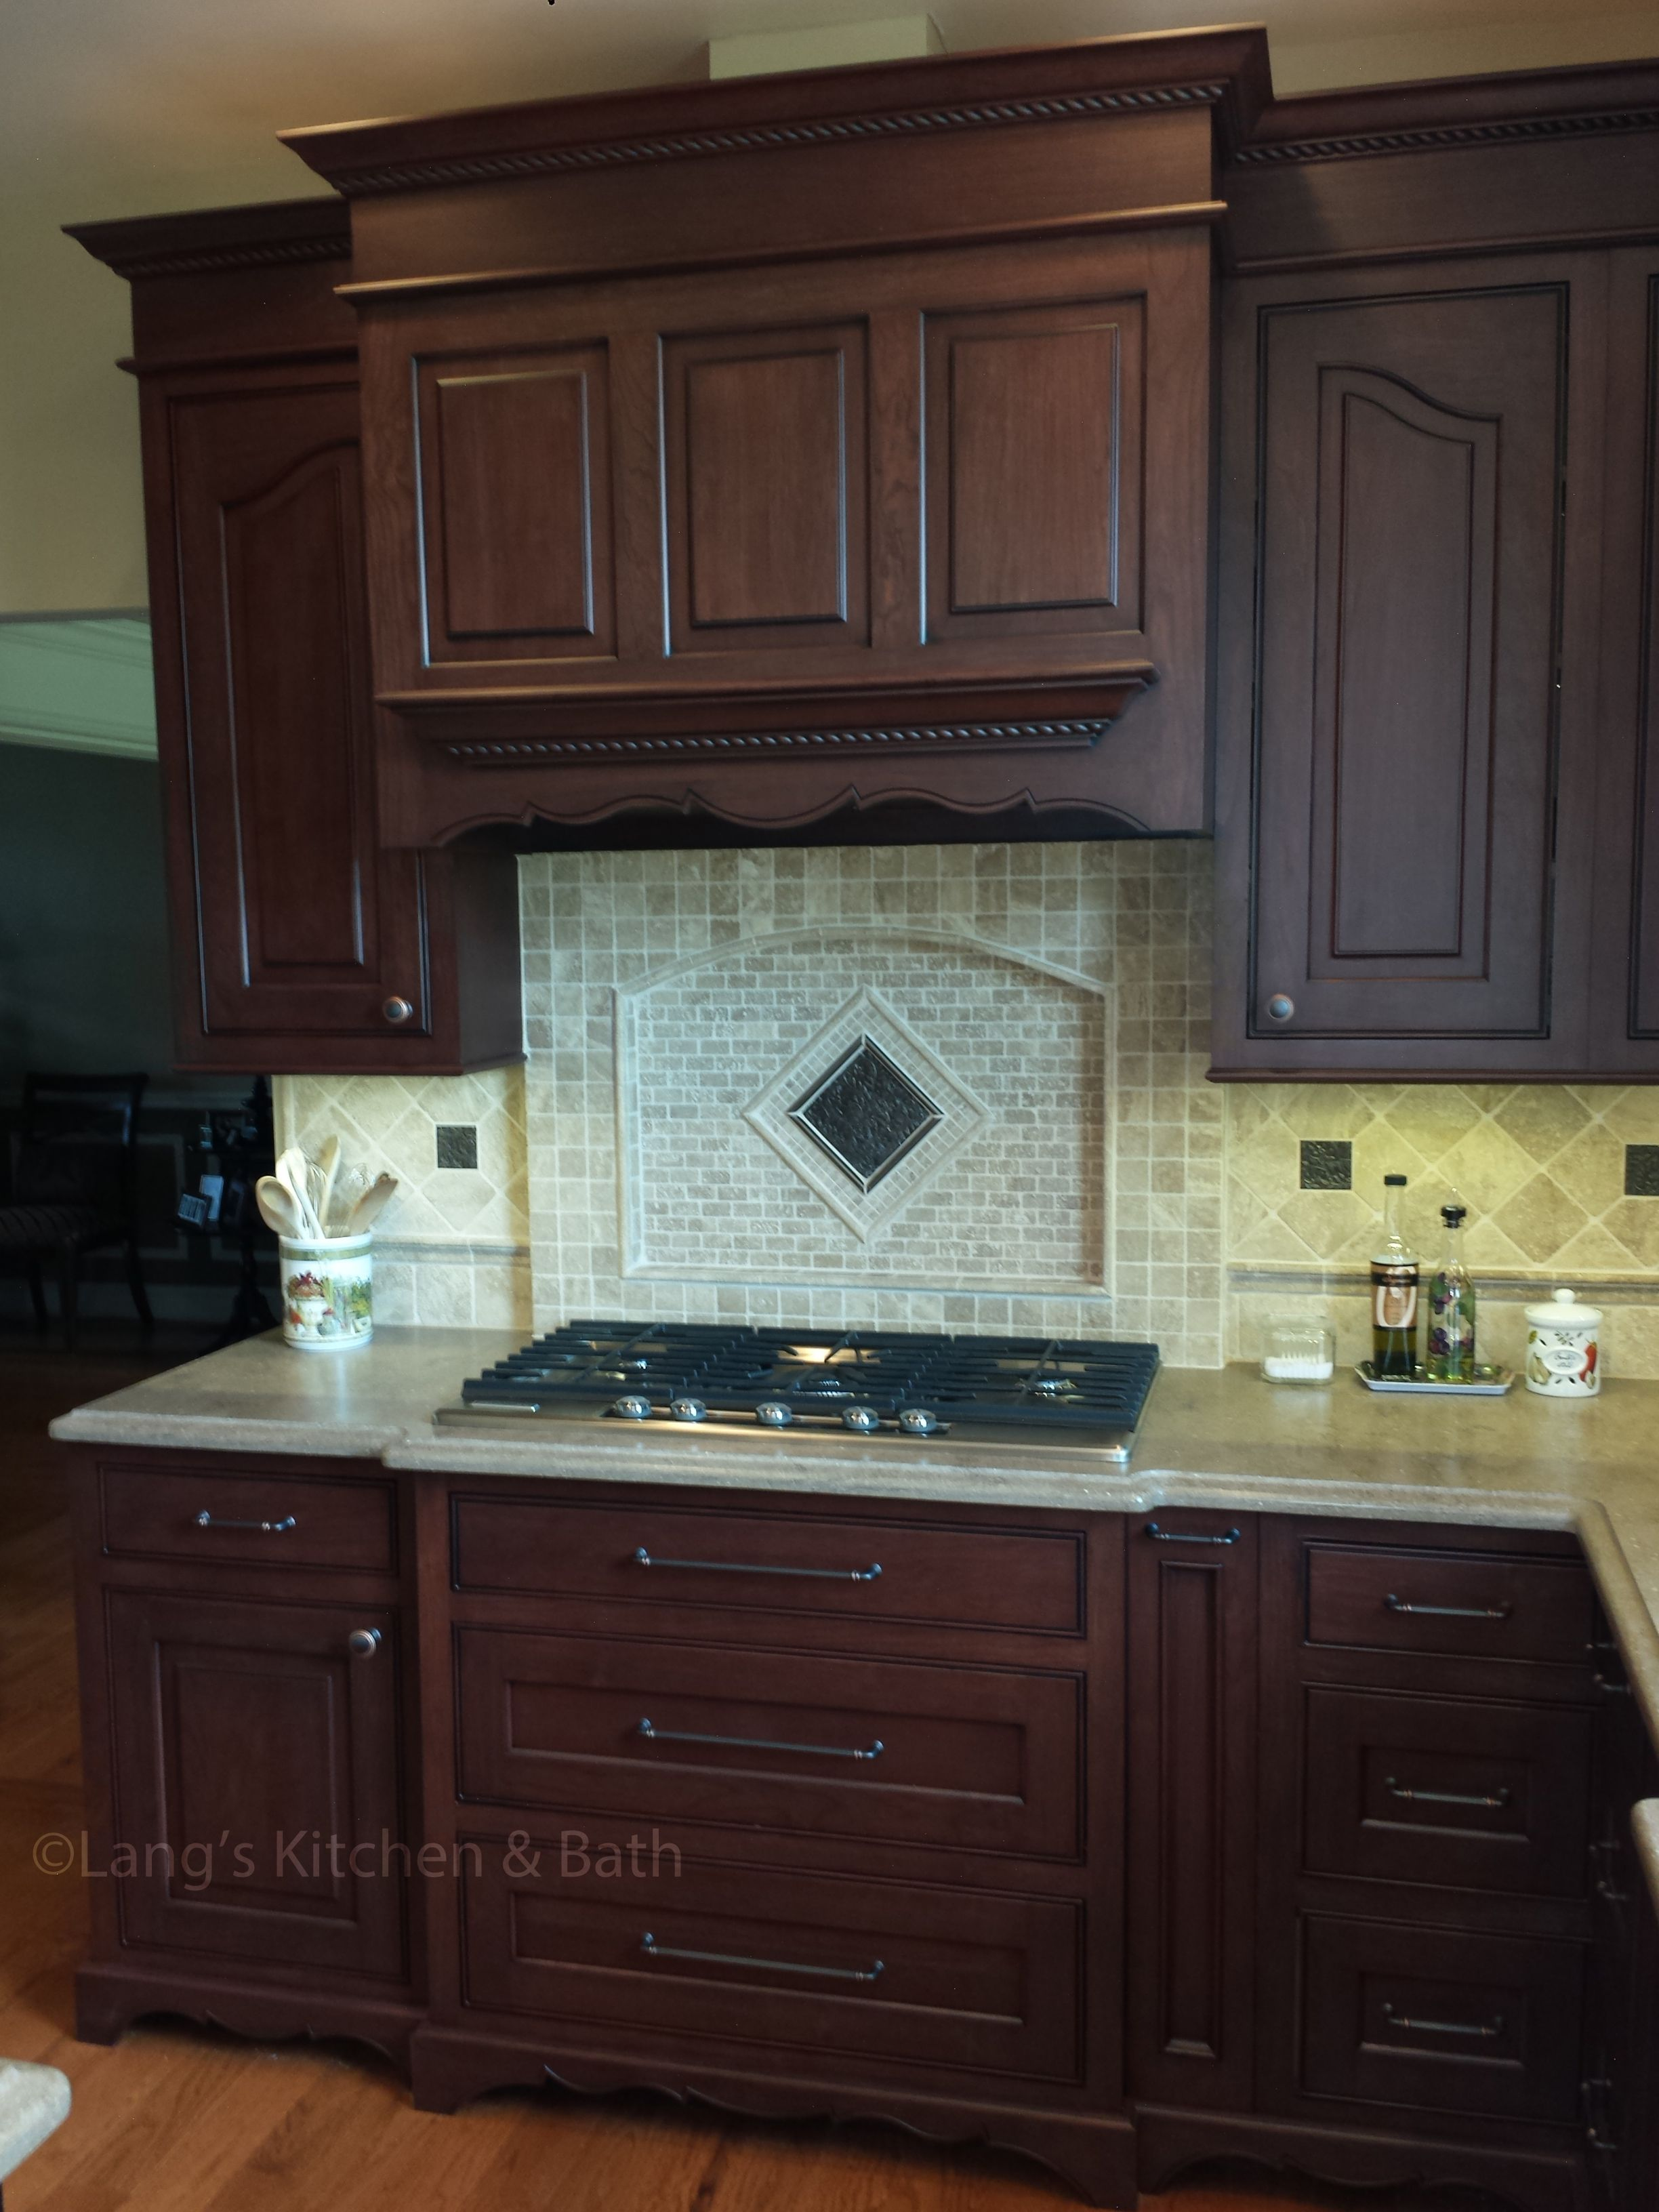 The Contrasting Cherry And Black Jay Rambo Kitchen Cabinets Give A  Sophisticated Backdrop To An Array